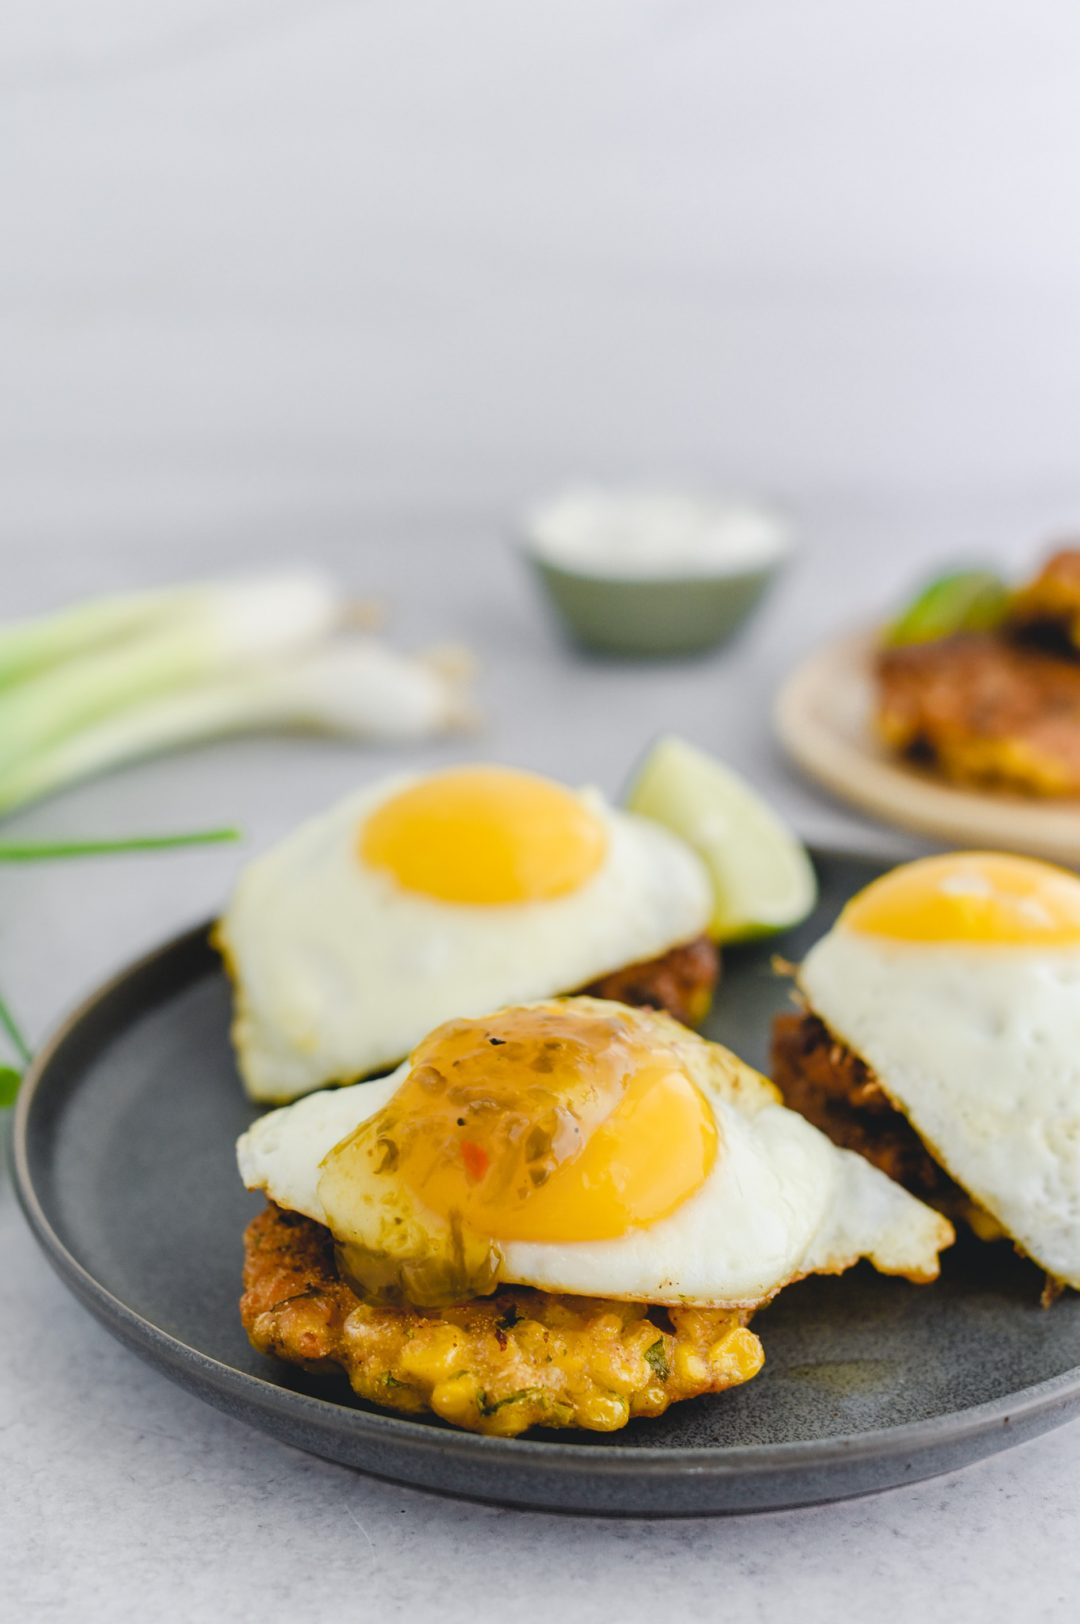 corn fritter with egg placed on top with jam